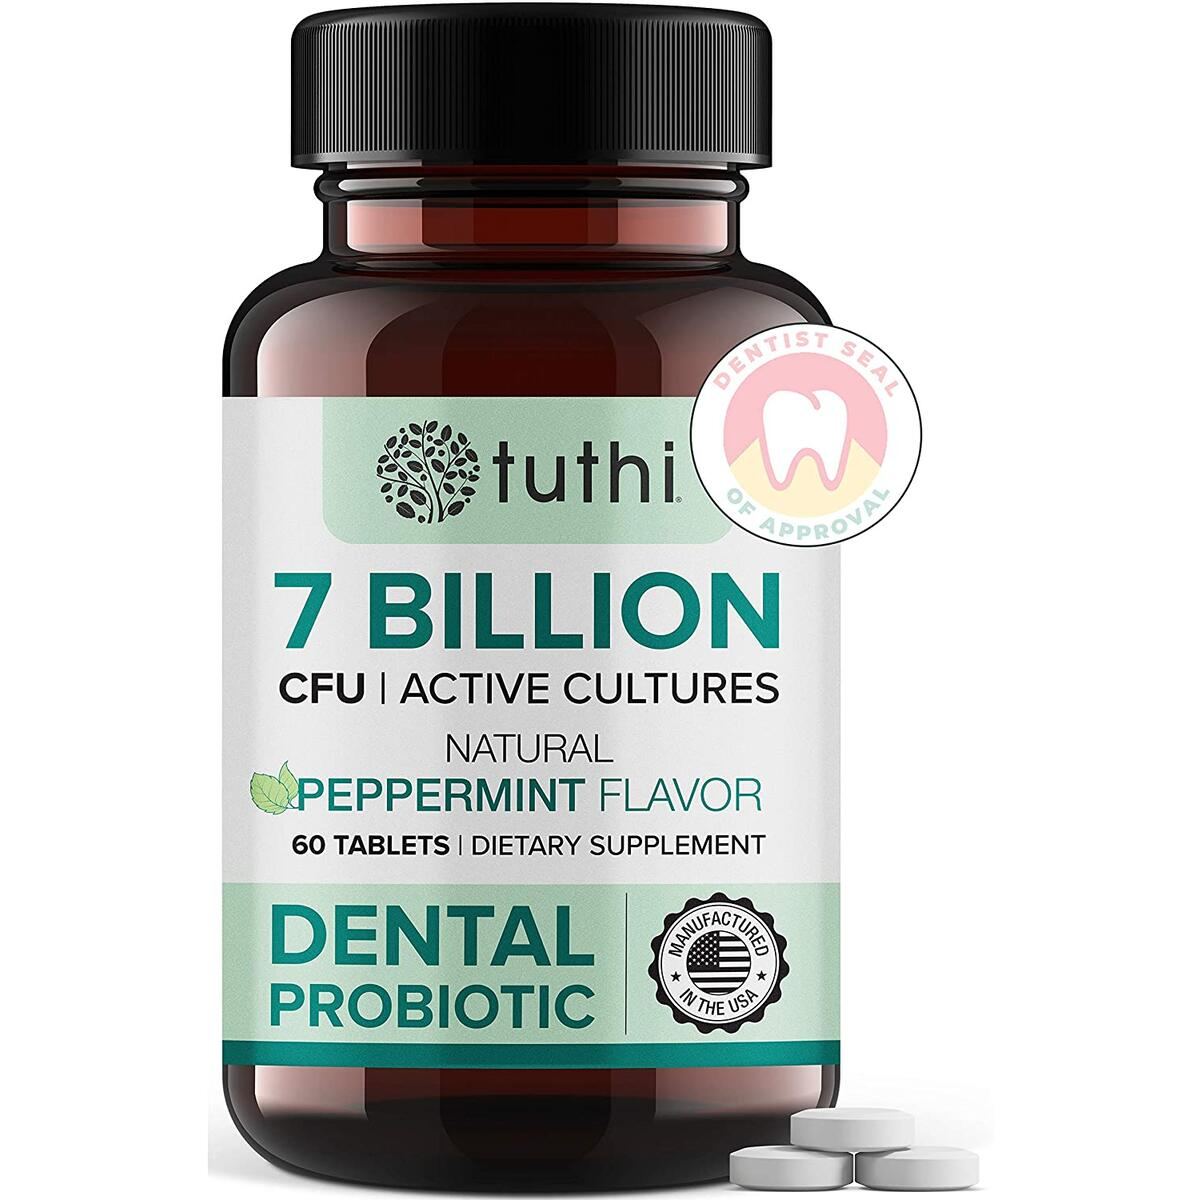 Dental Probiotics - Probiotic for Mouth Teeth & Gum Care - Oral Health - Fresh Breath - 60 Lozenges